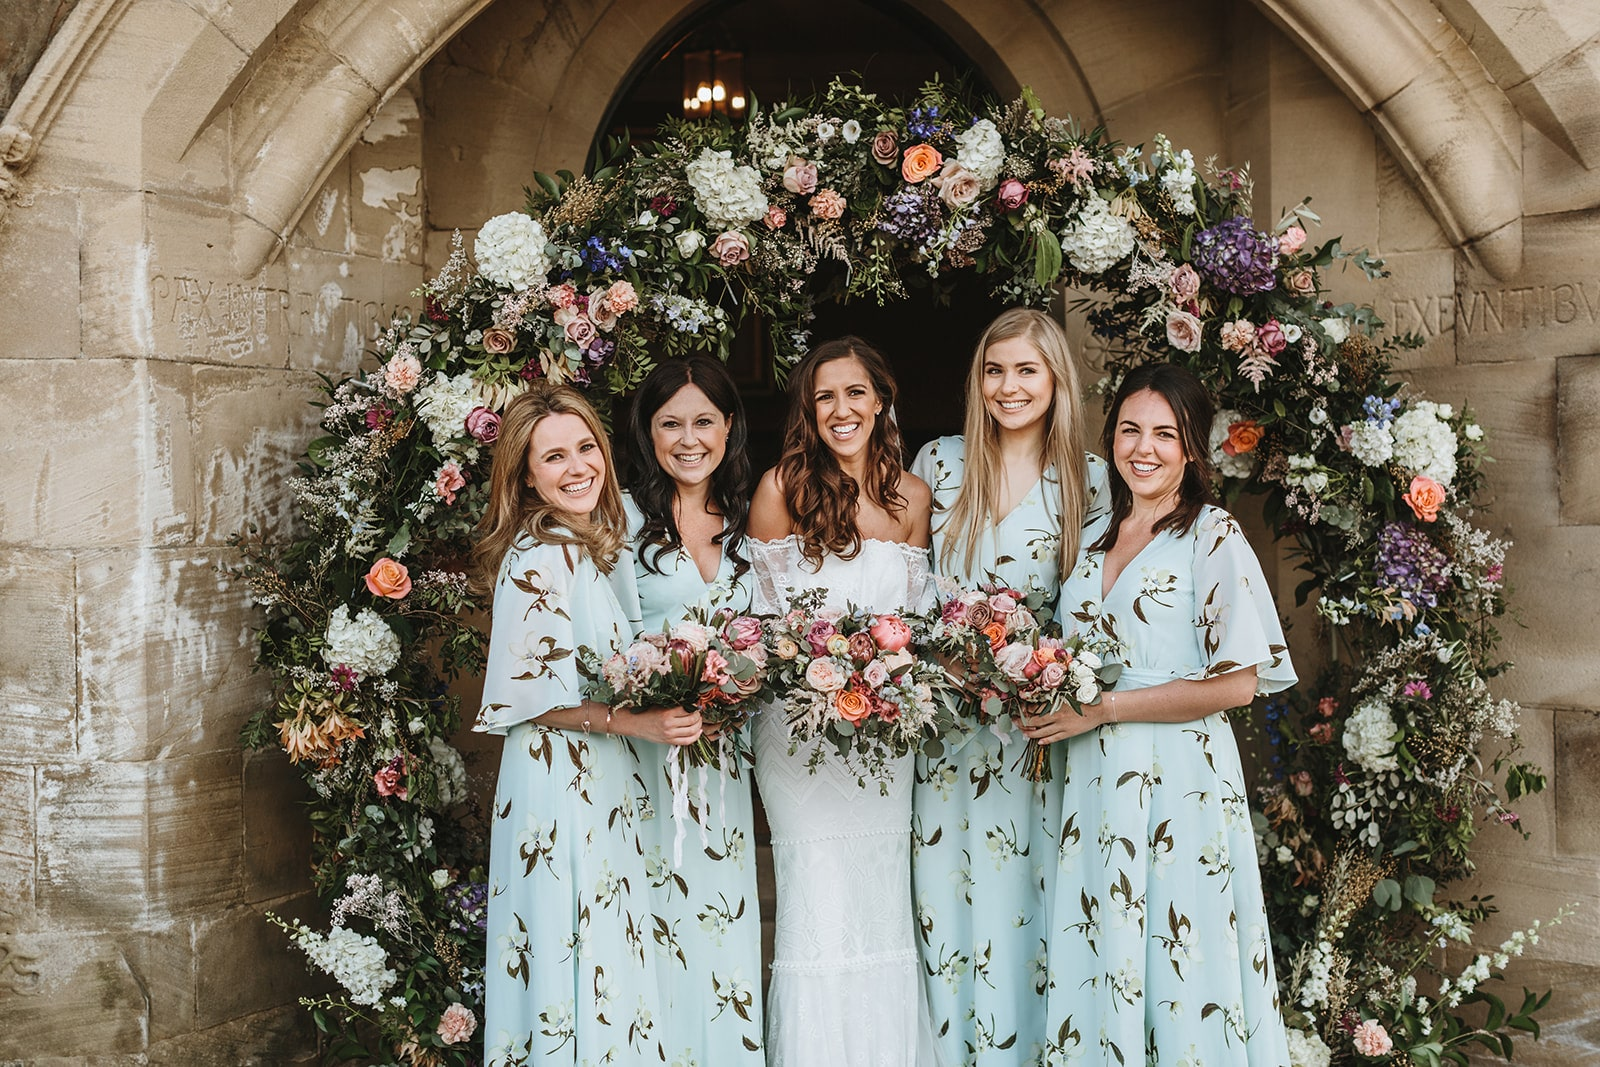 floral arch at a wedding for group shots